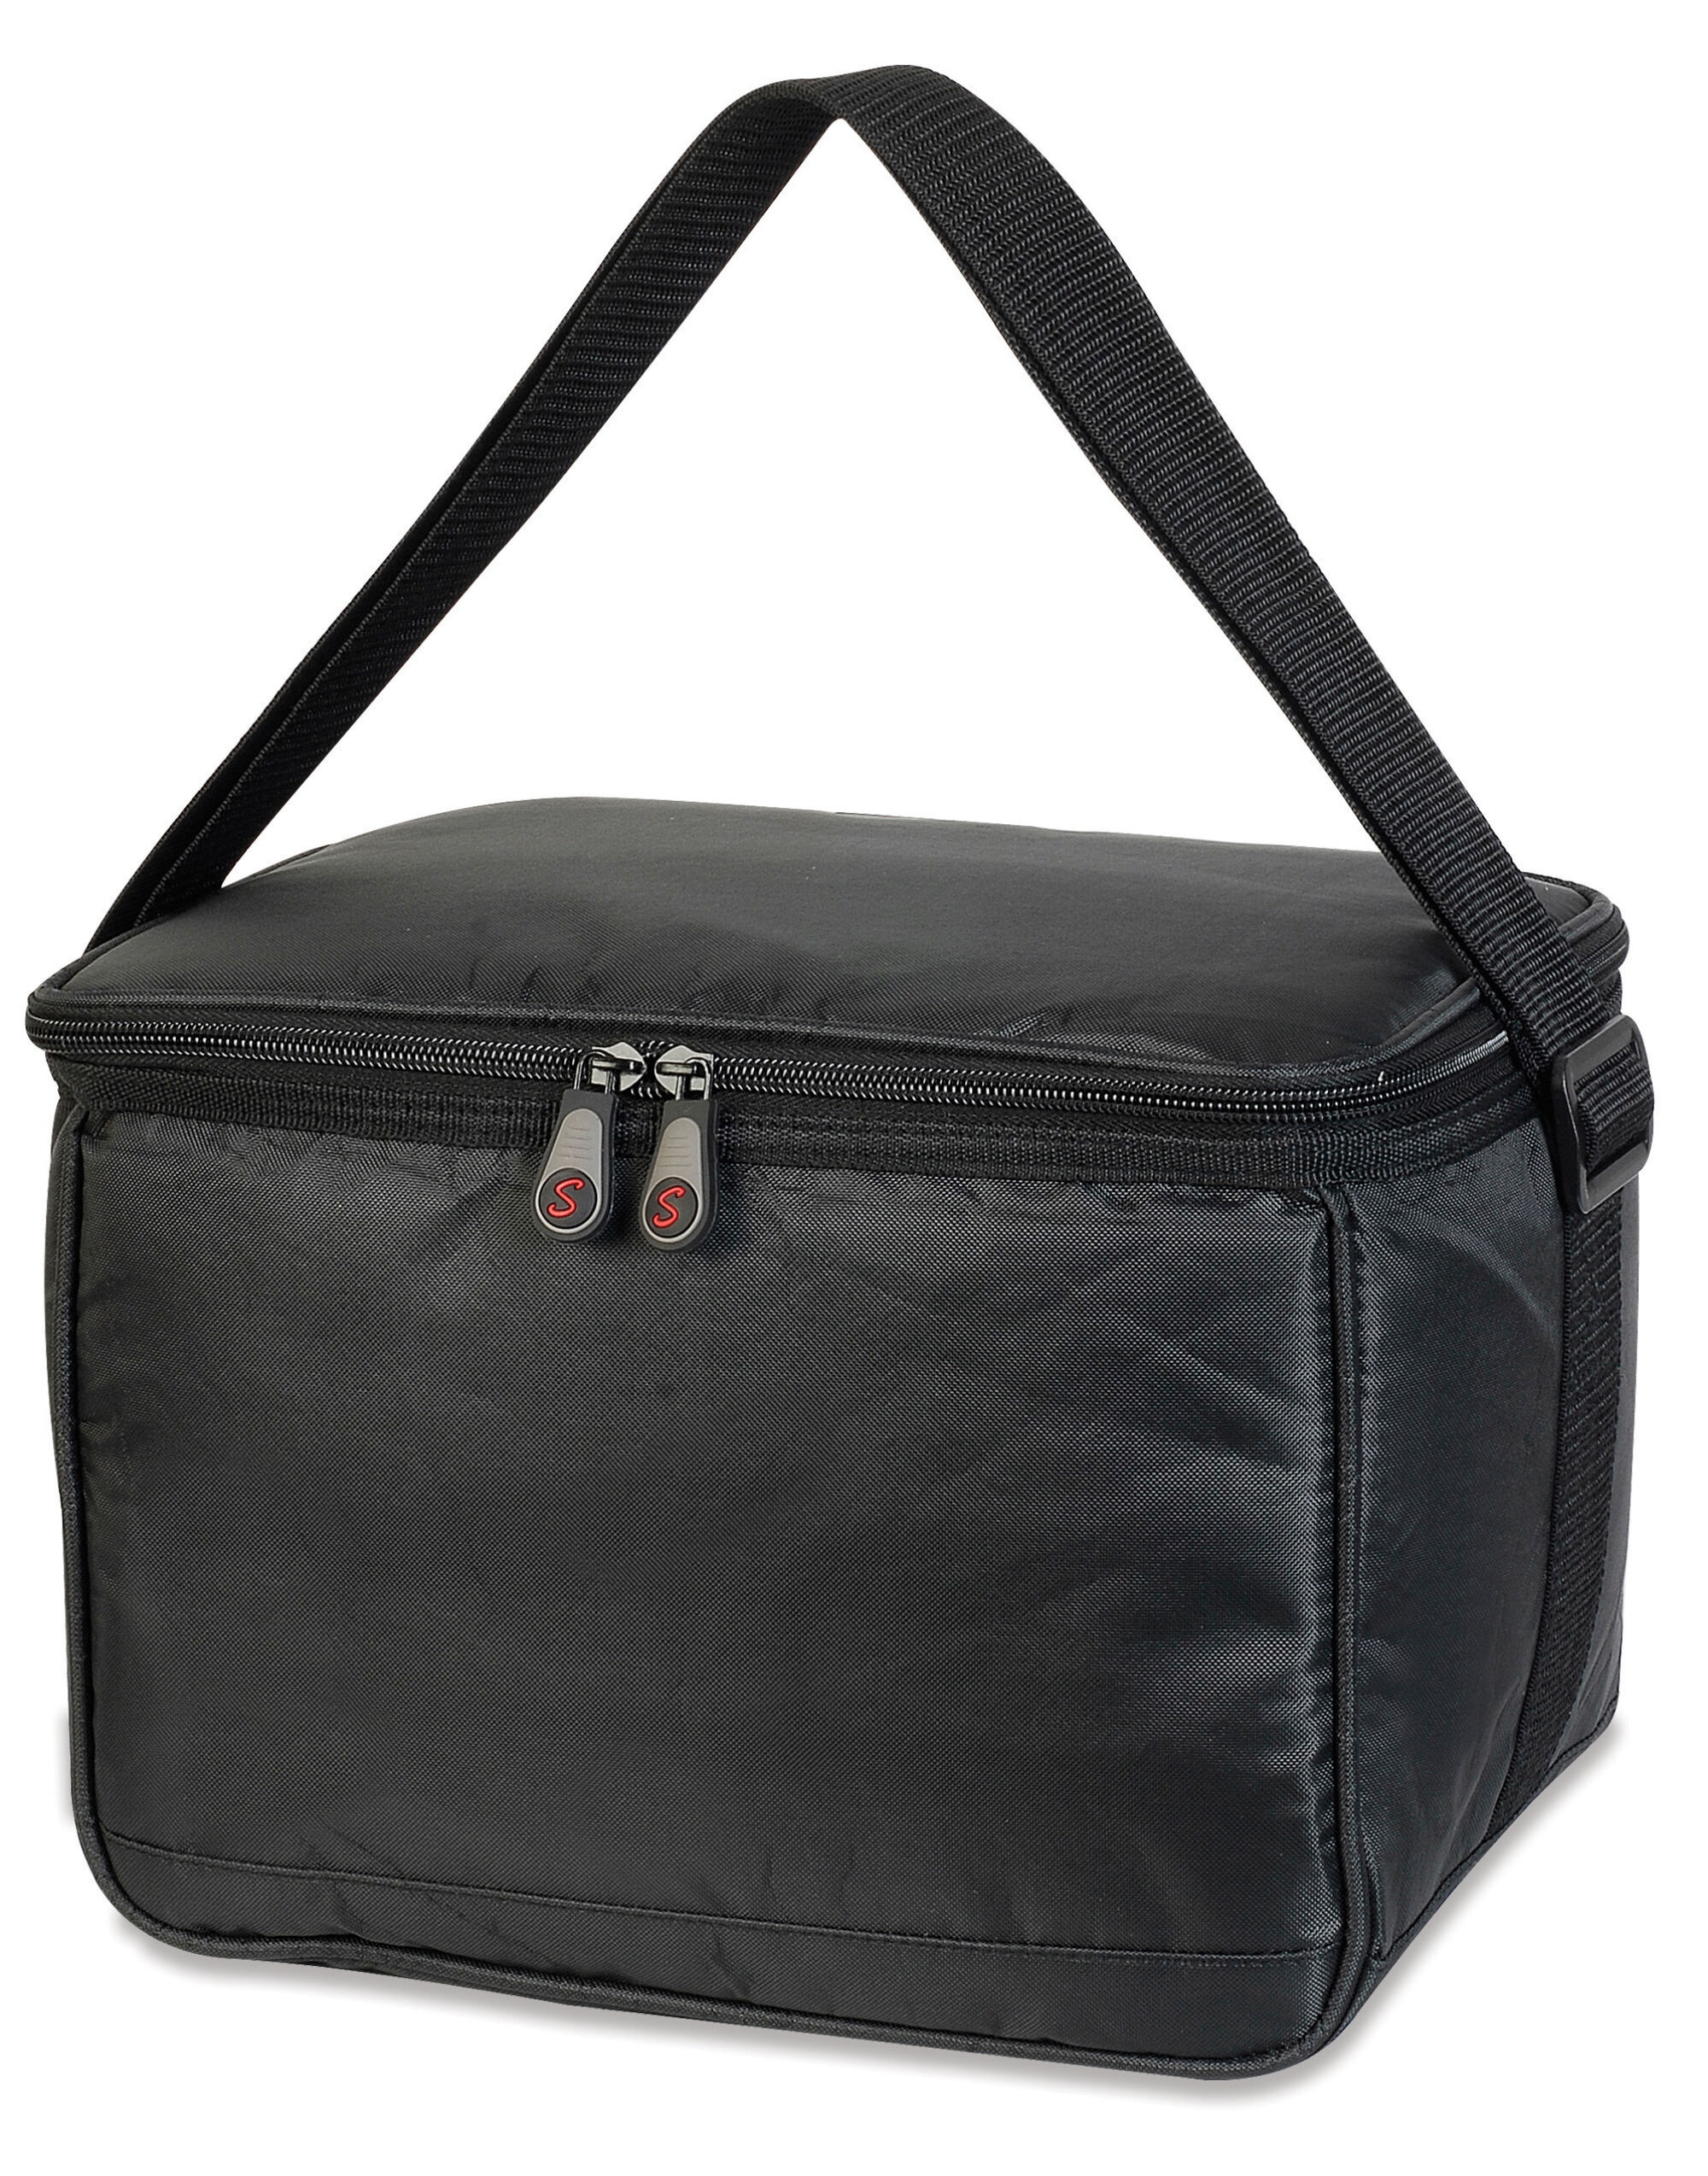 Woodstock Cooler Bag